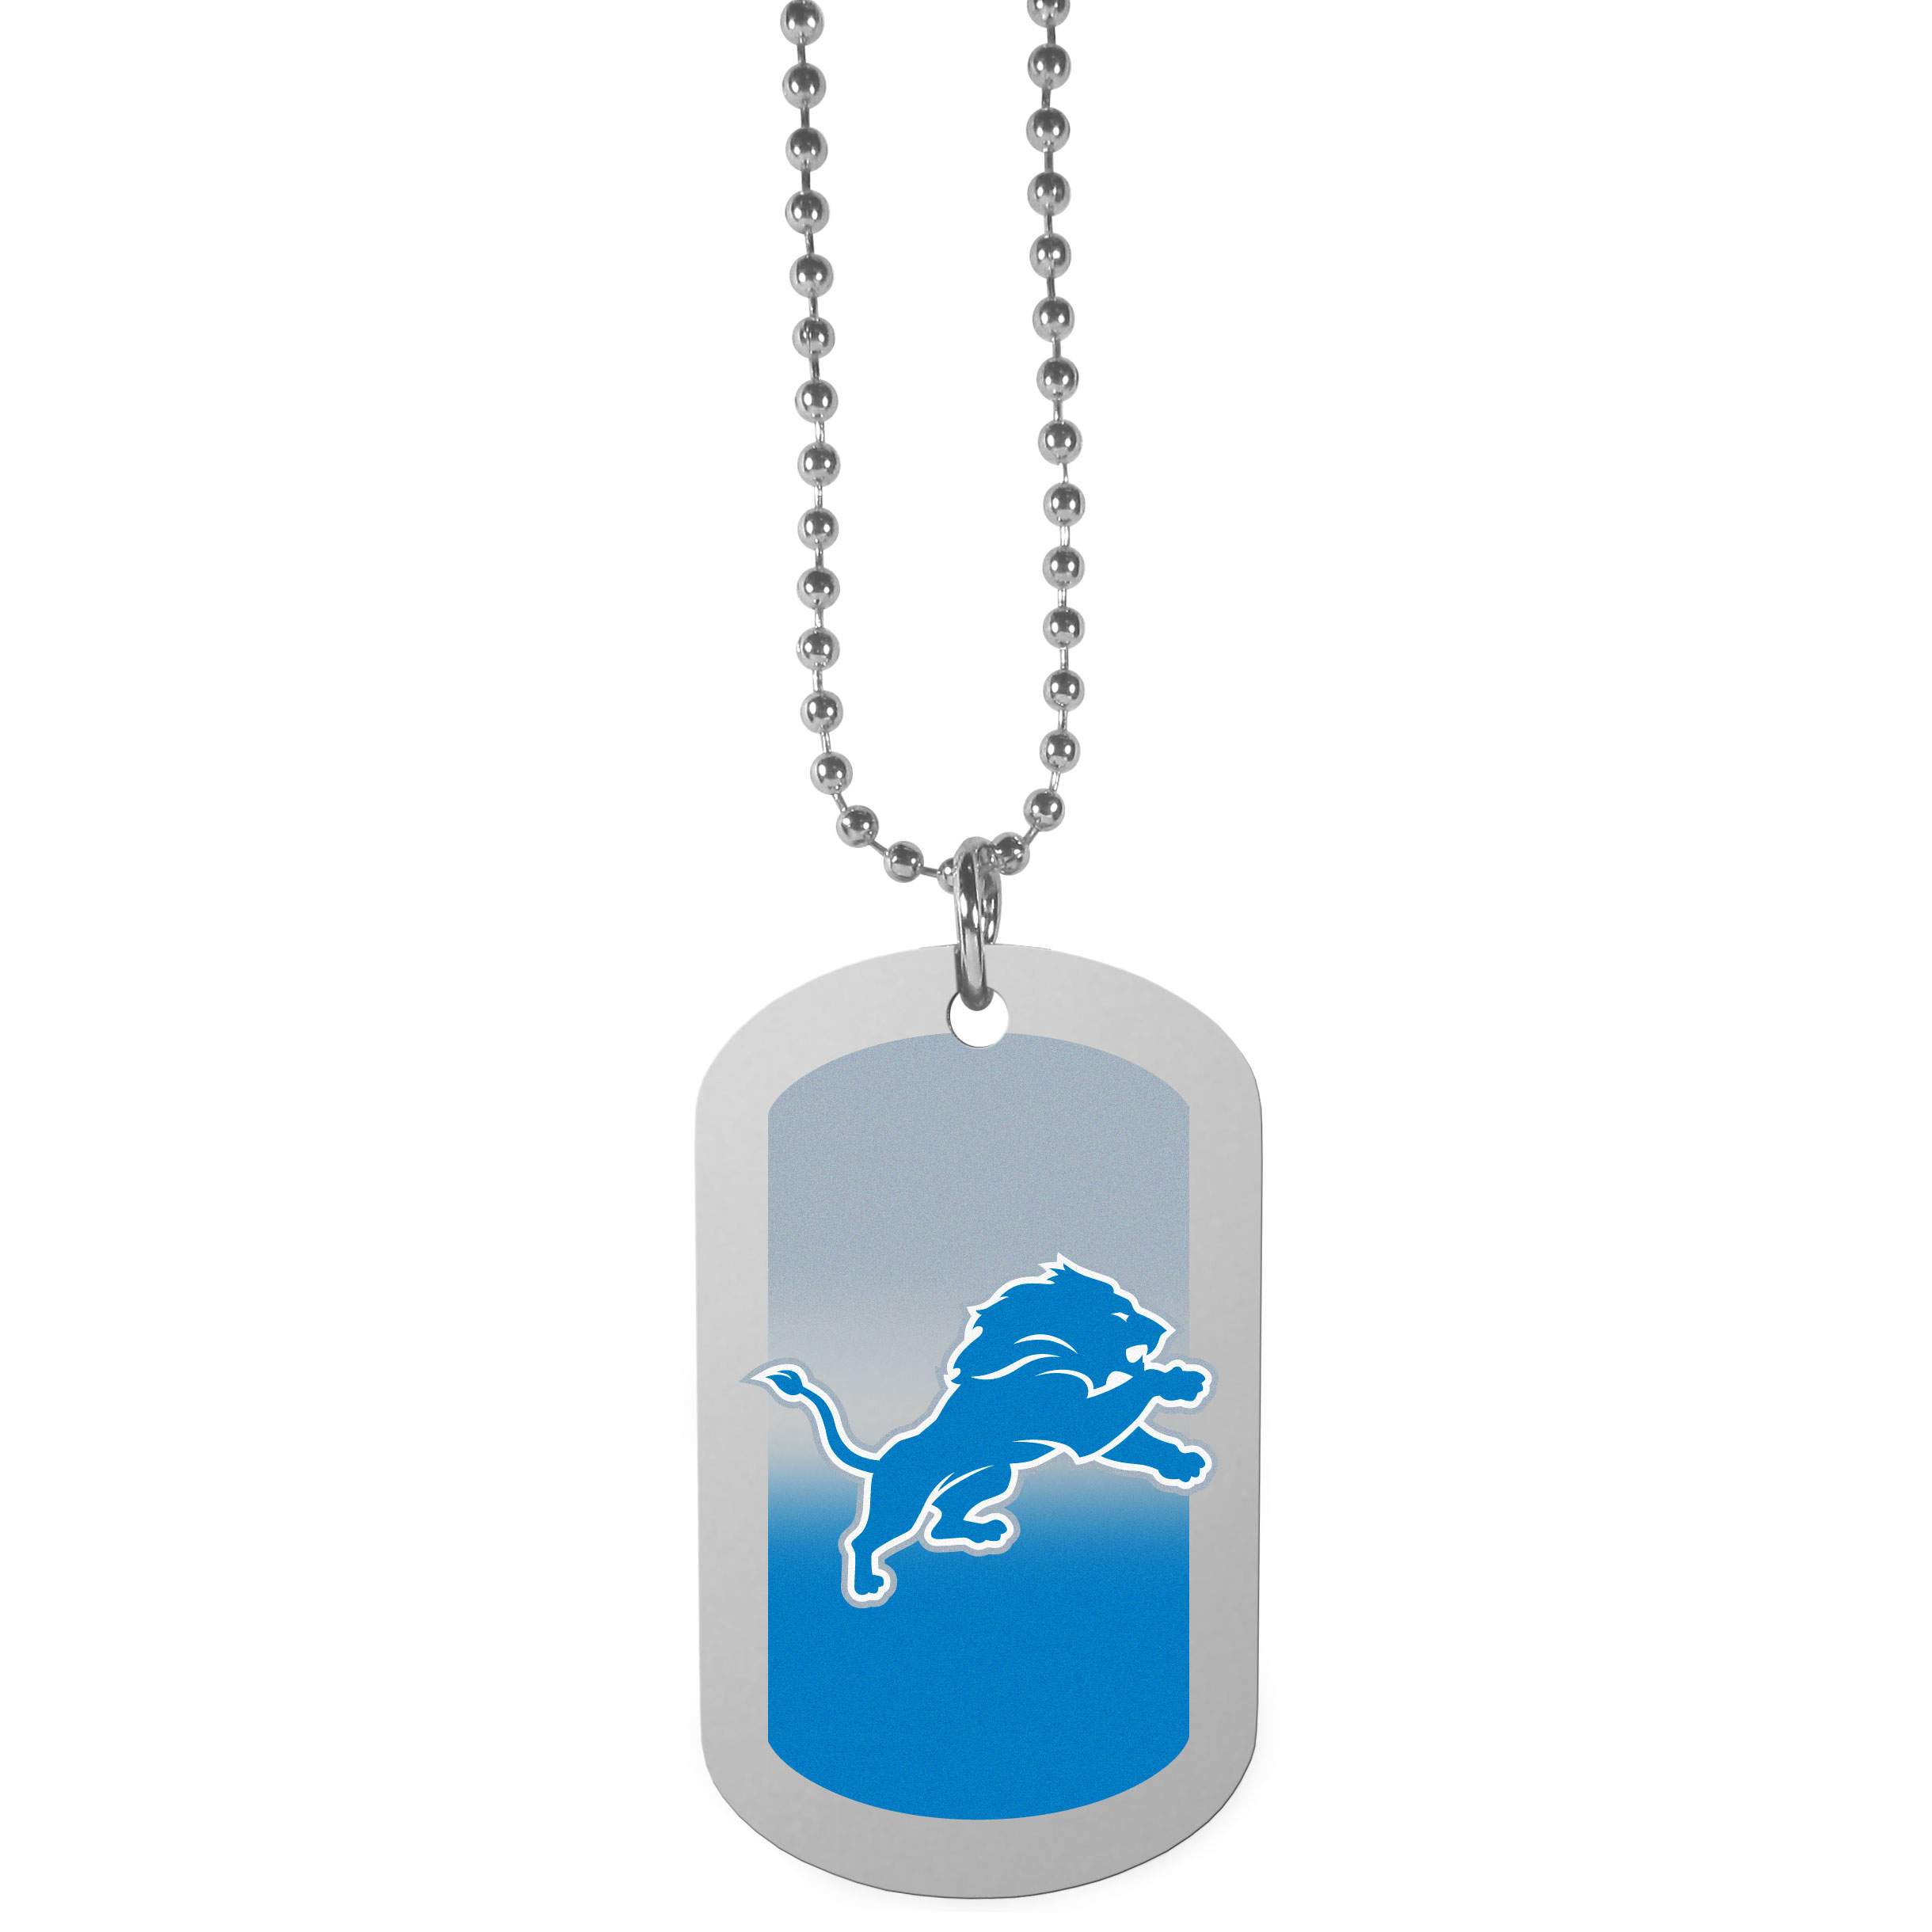 Detroit Lions Team Tag Necklace - Dog tag necklaces are a fashion statement that is here to stay. The sporty version of the classic tag features a gradient print in team colors featuring a full color team logo over a high polish tag to create a bold and sporty look. The tag comes on a 26 inch ball chain with a ball and joint clasp. Any Detroit Lions would be proud to wear this attractive fashion accessory.